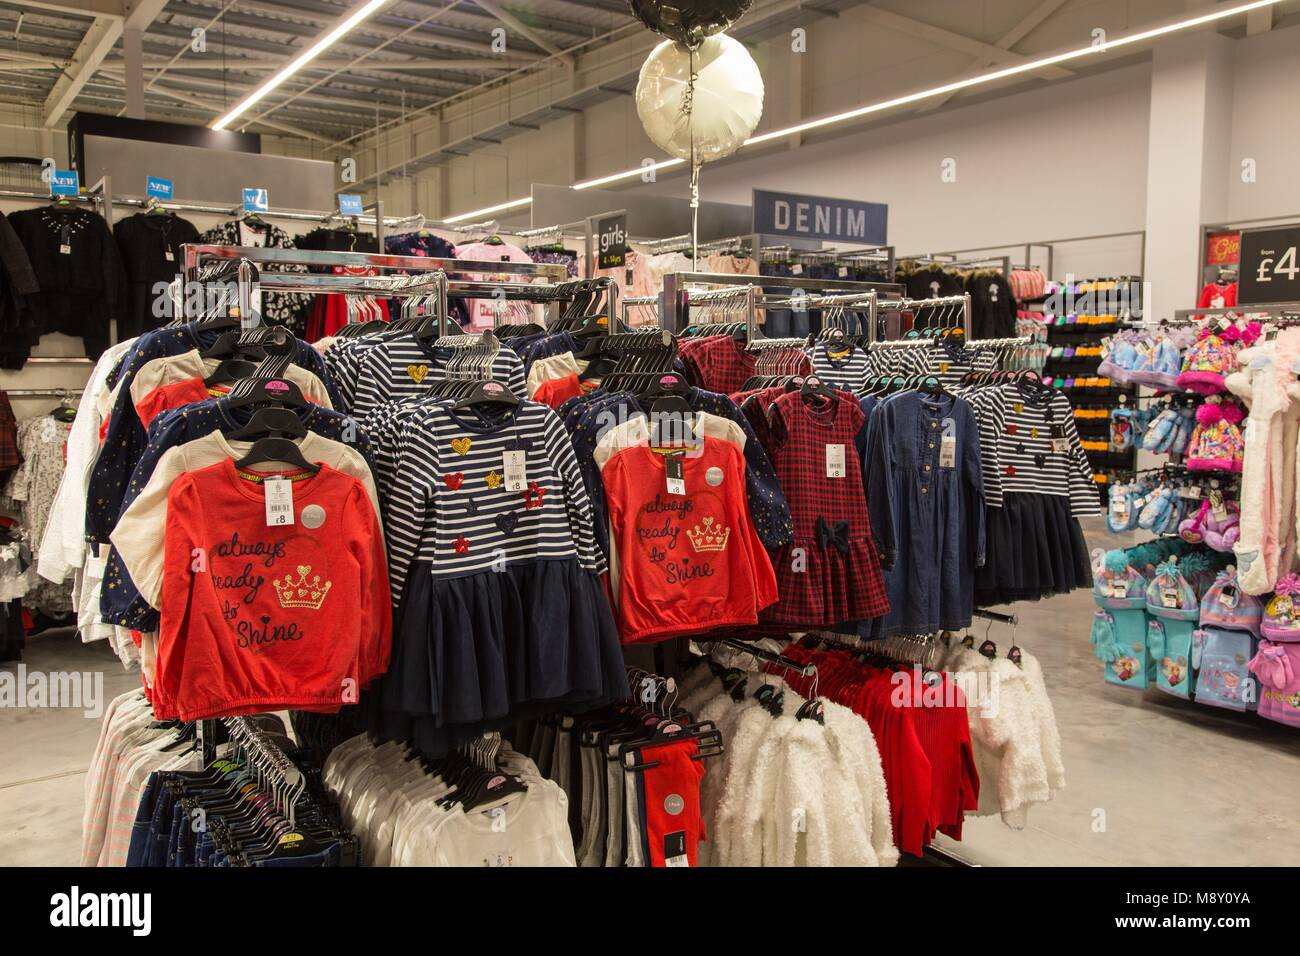 Childrens clothing on sale in the George section of an Asda supermarket. - Stock Image